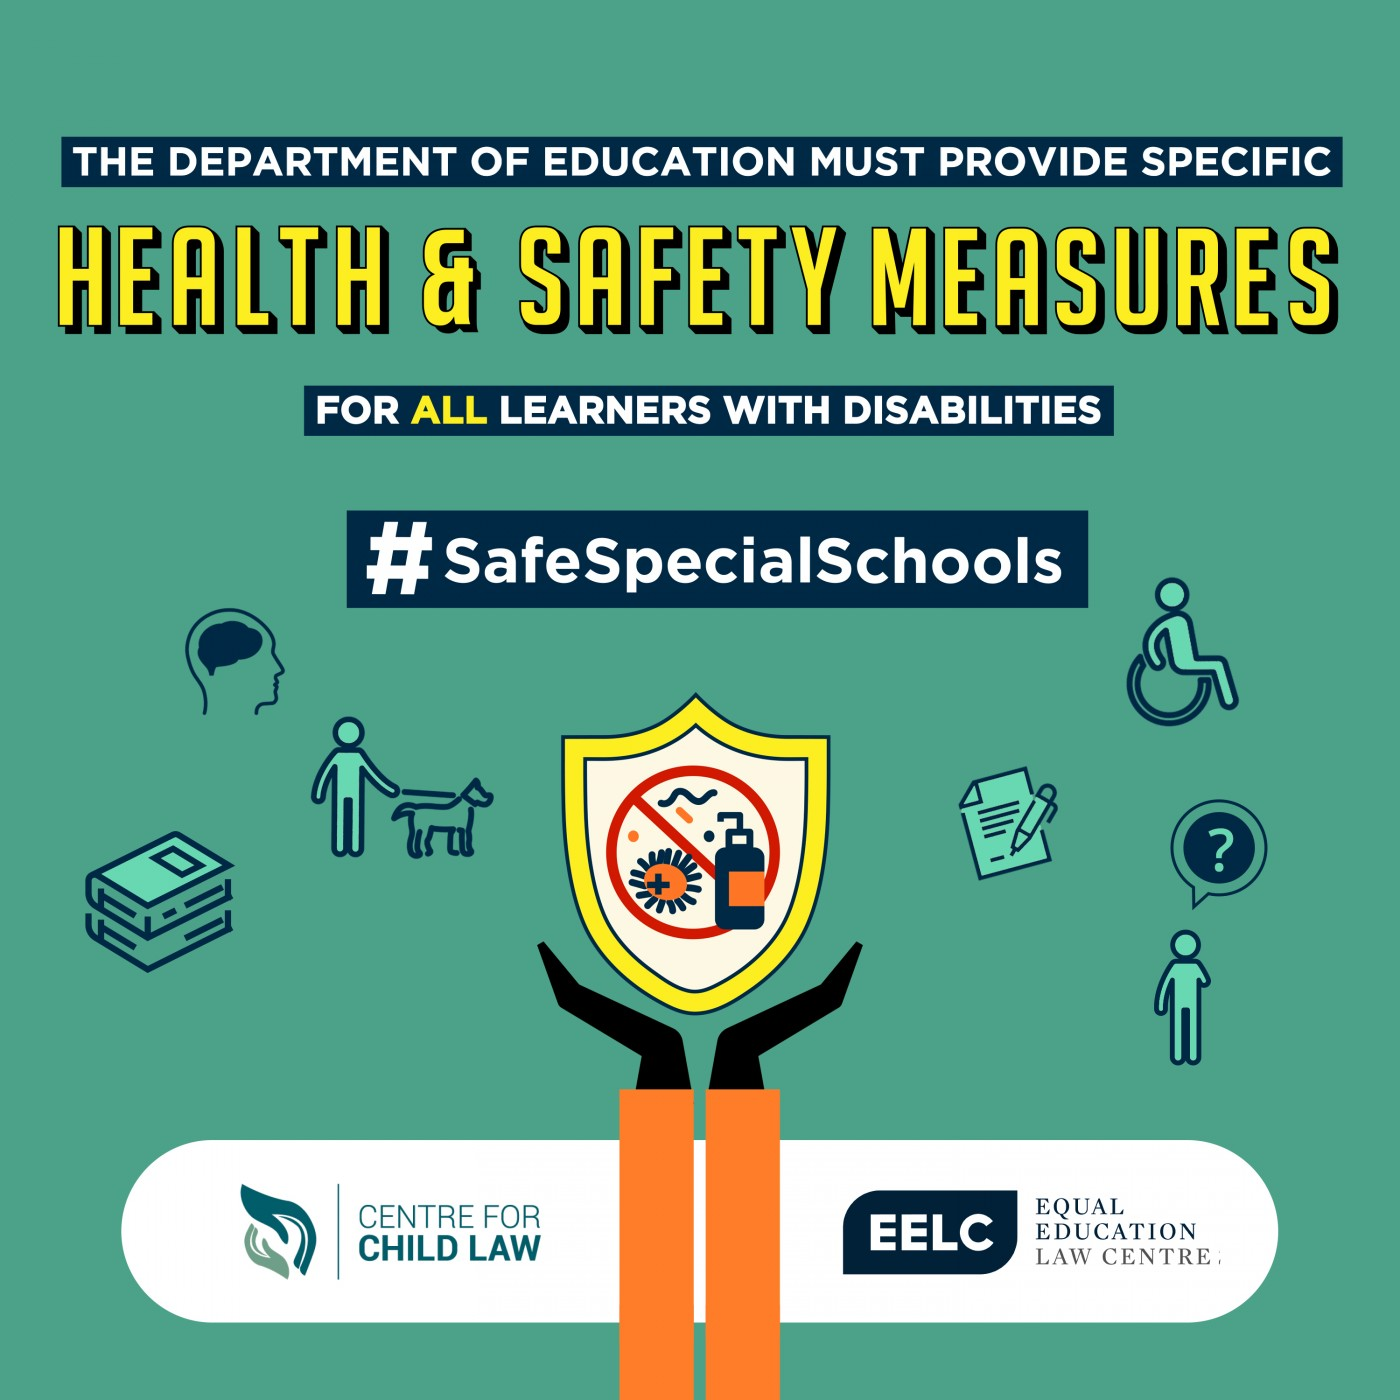 #SafeSpecialSchools #LeftBehindAgain #ProtectDisabledLearners- Learners with Disabilities